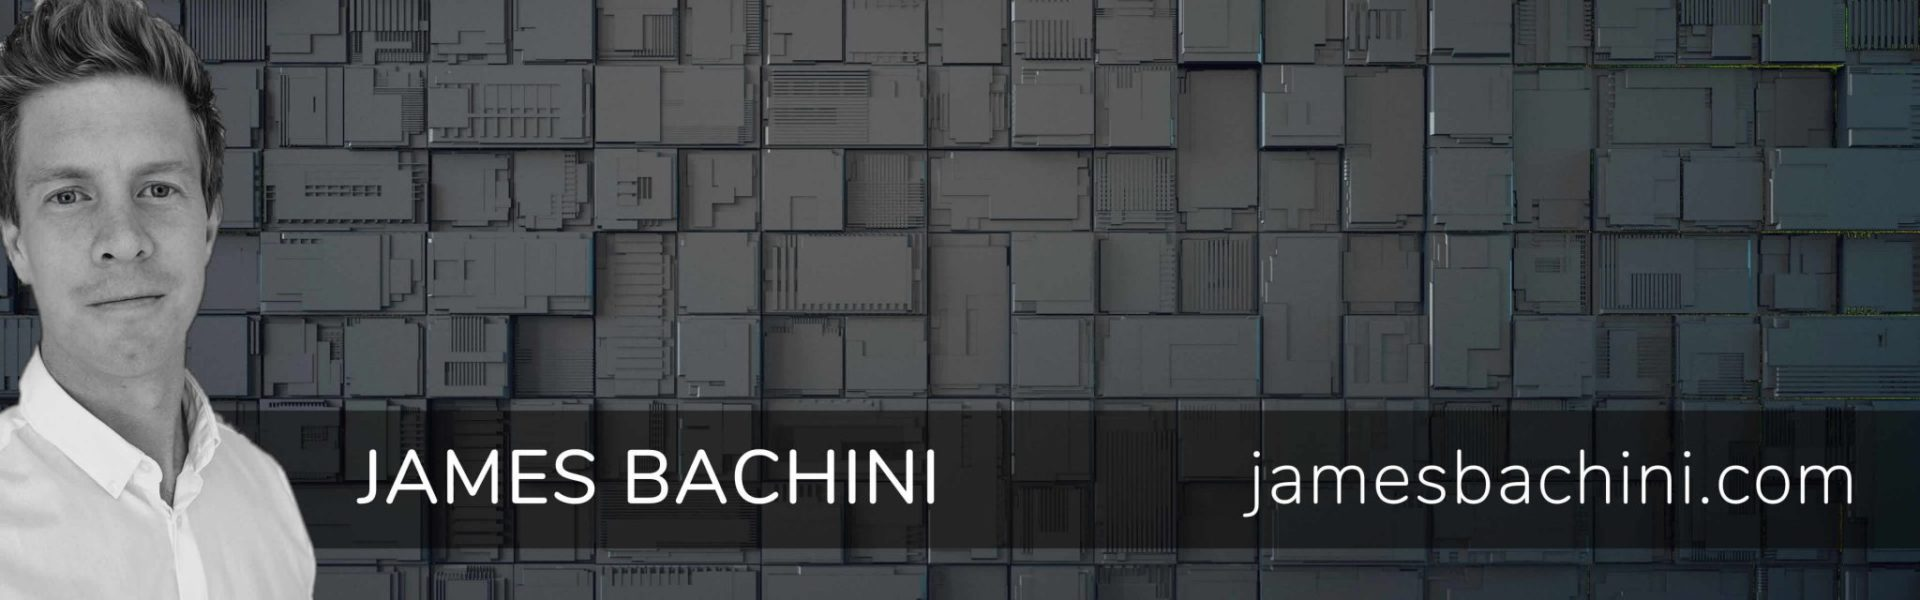 JamesBachini.com